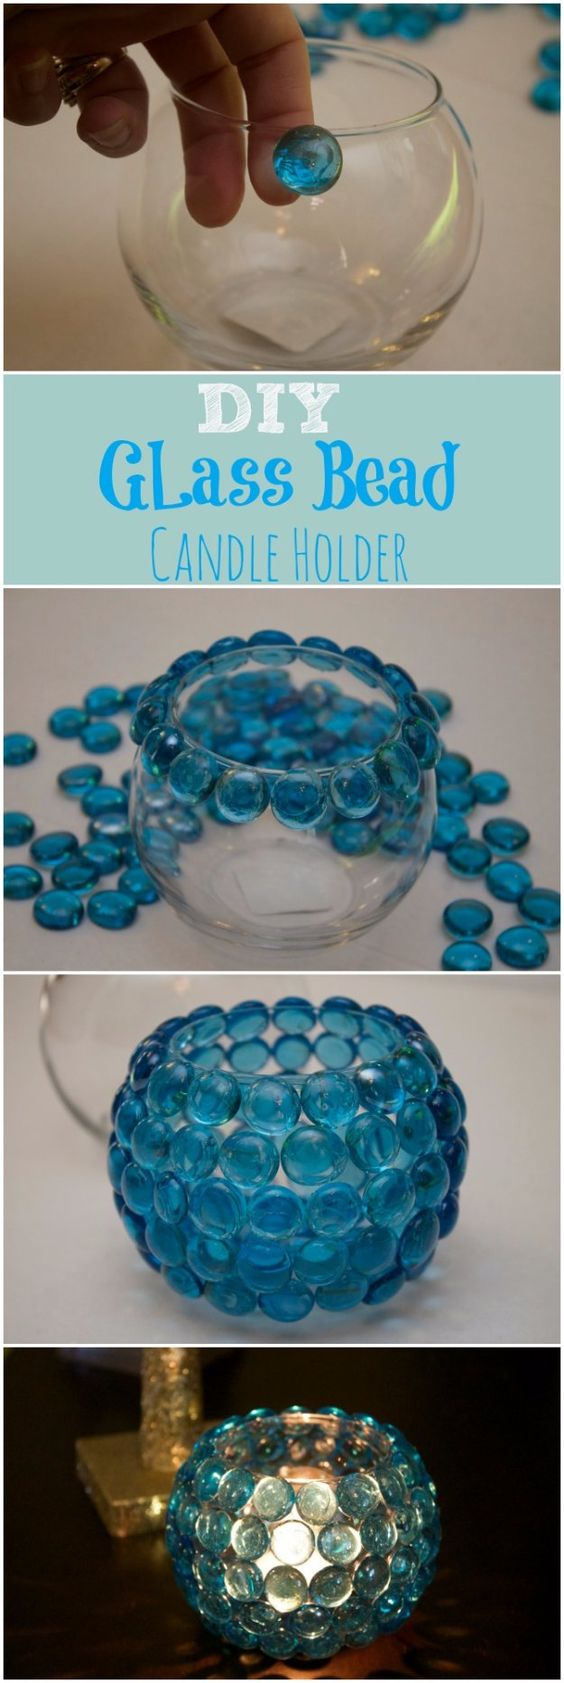 50 Easy Crafts to Make and Sell Homemade, Glasses and